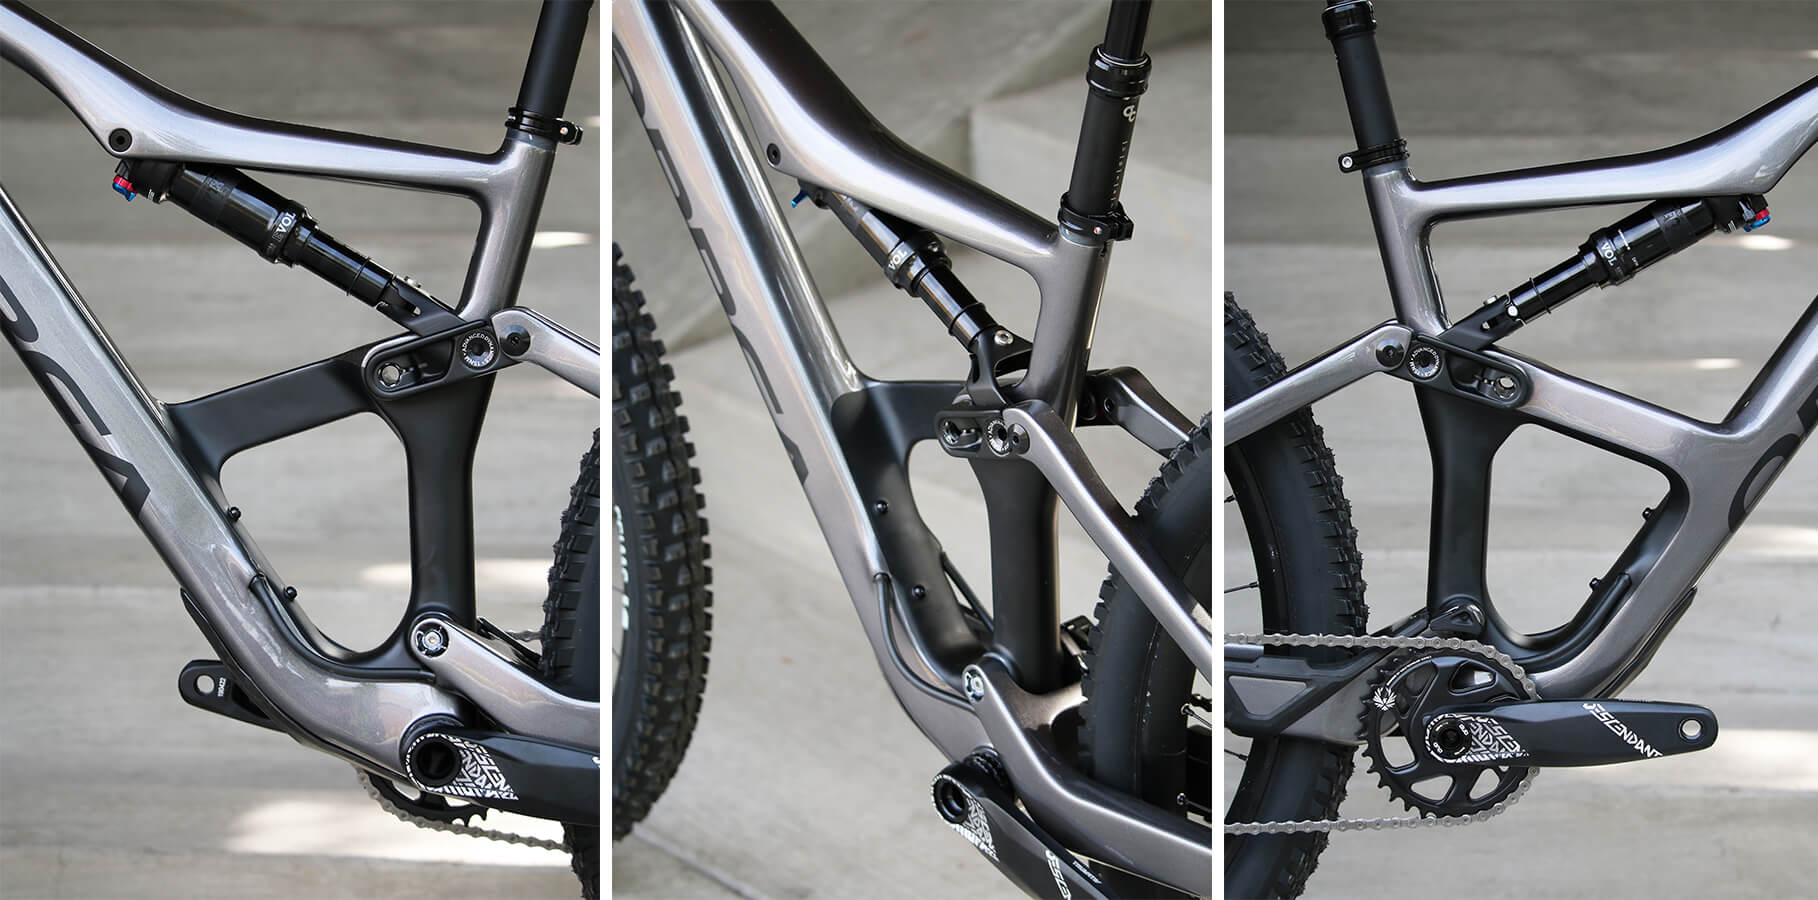 2020 Orbea Occam Rear Suspension Linkage - Contender Bicycles